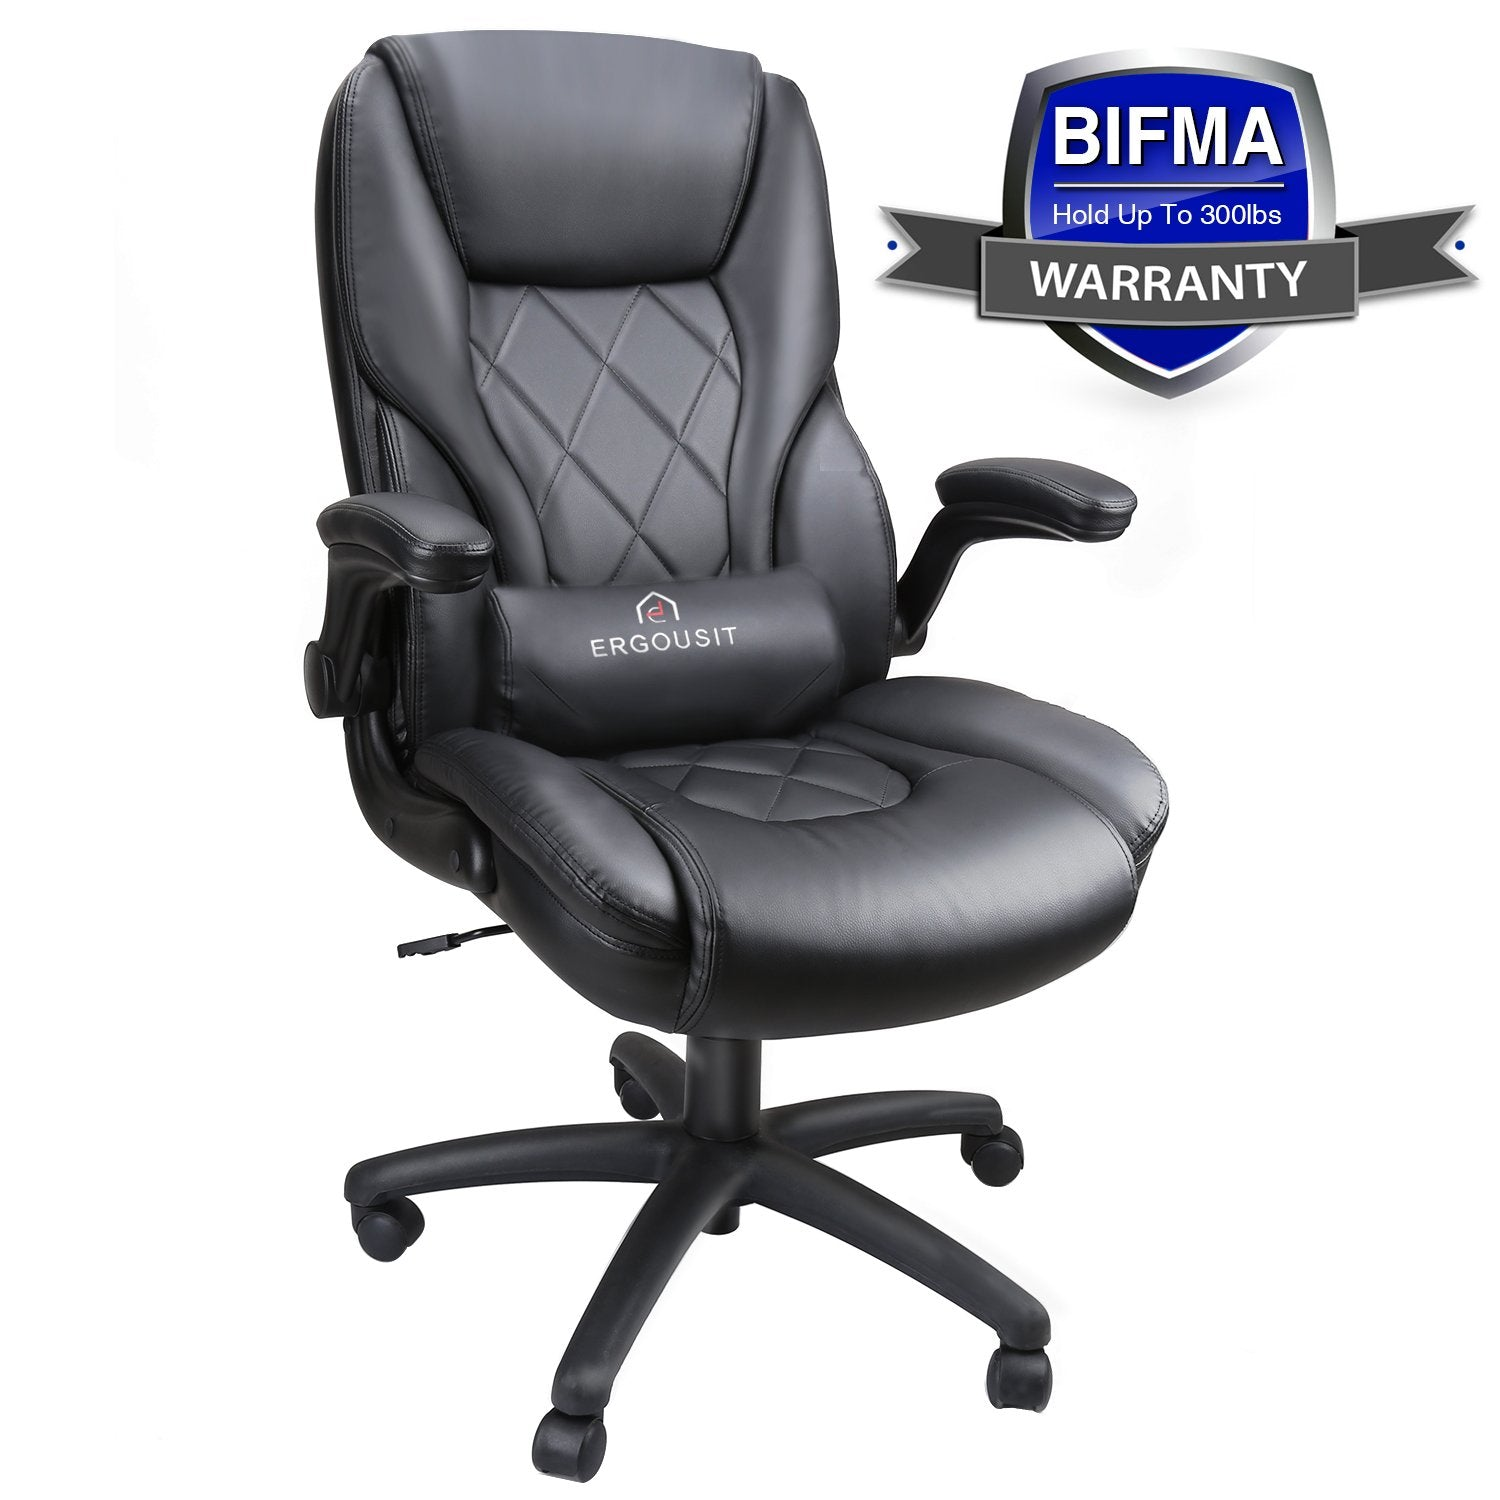 Peachy Executive Office Chairs High Back Racing Style Task Chair Adjustable Computer Desk Chairs With Lumbar Support Leather Black For Office Room Decor Ibusinesslaw Wood Chair Design Ideas Ibusinesslaworg